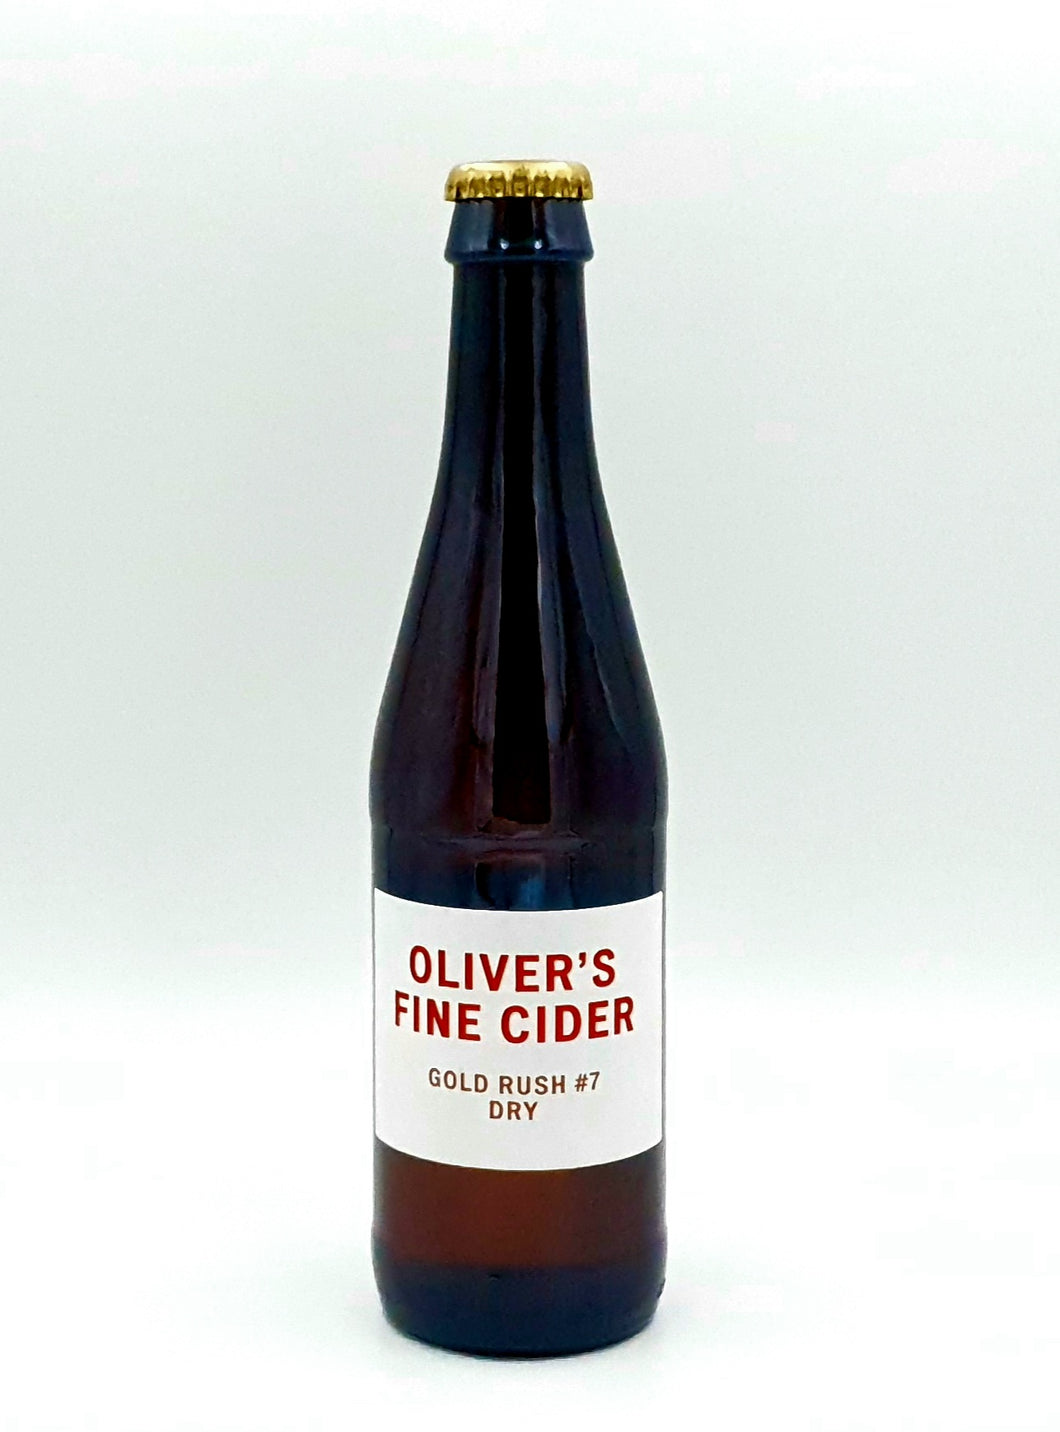 Gold Rush #7 - Oliver's - Dry Cider, 6.5%, 330ml Bottle